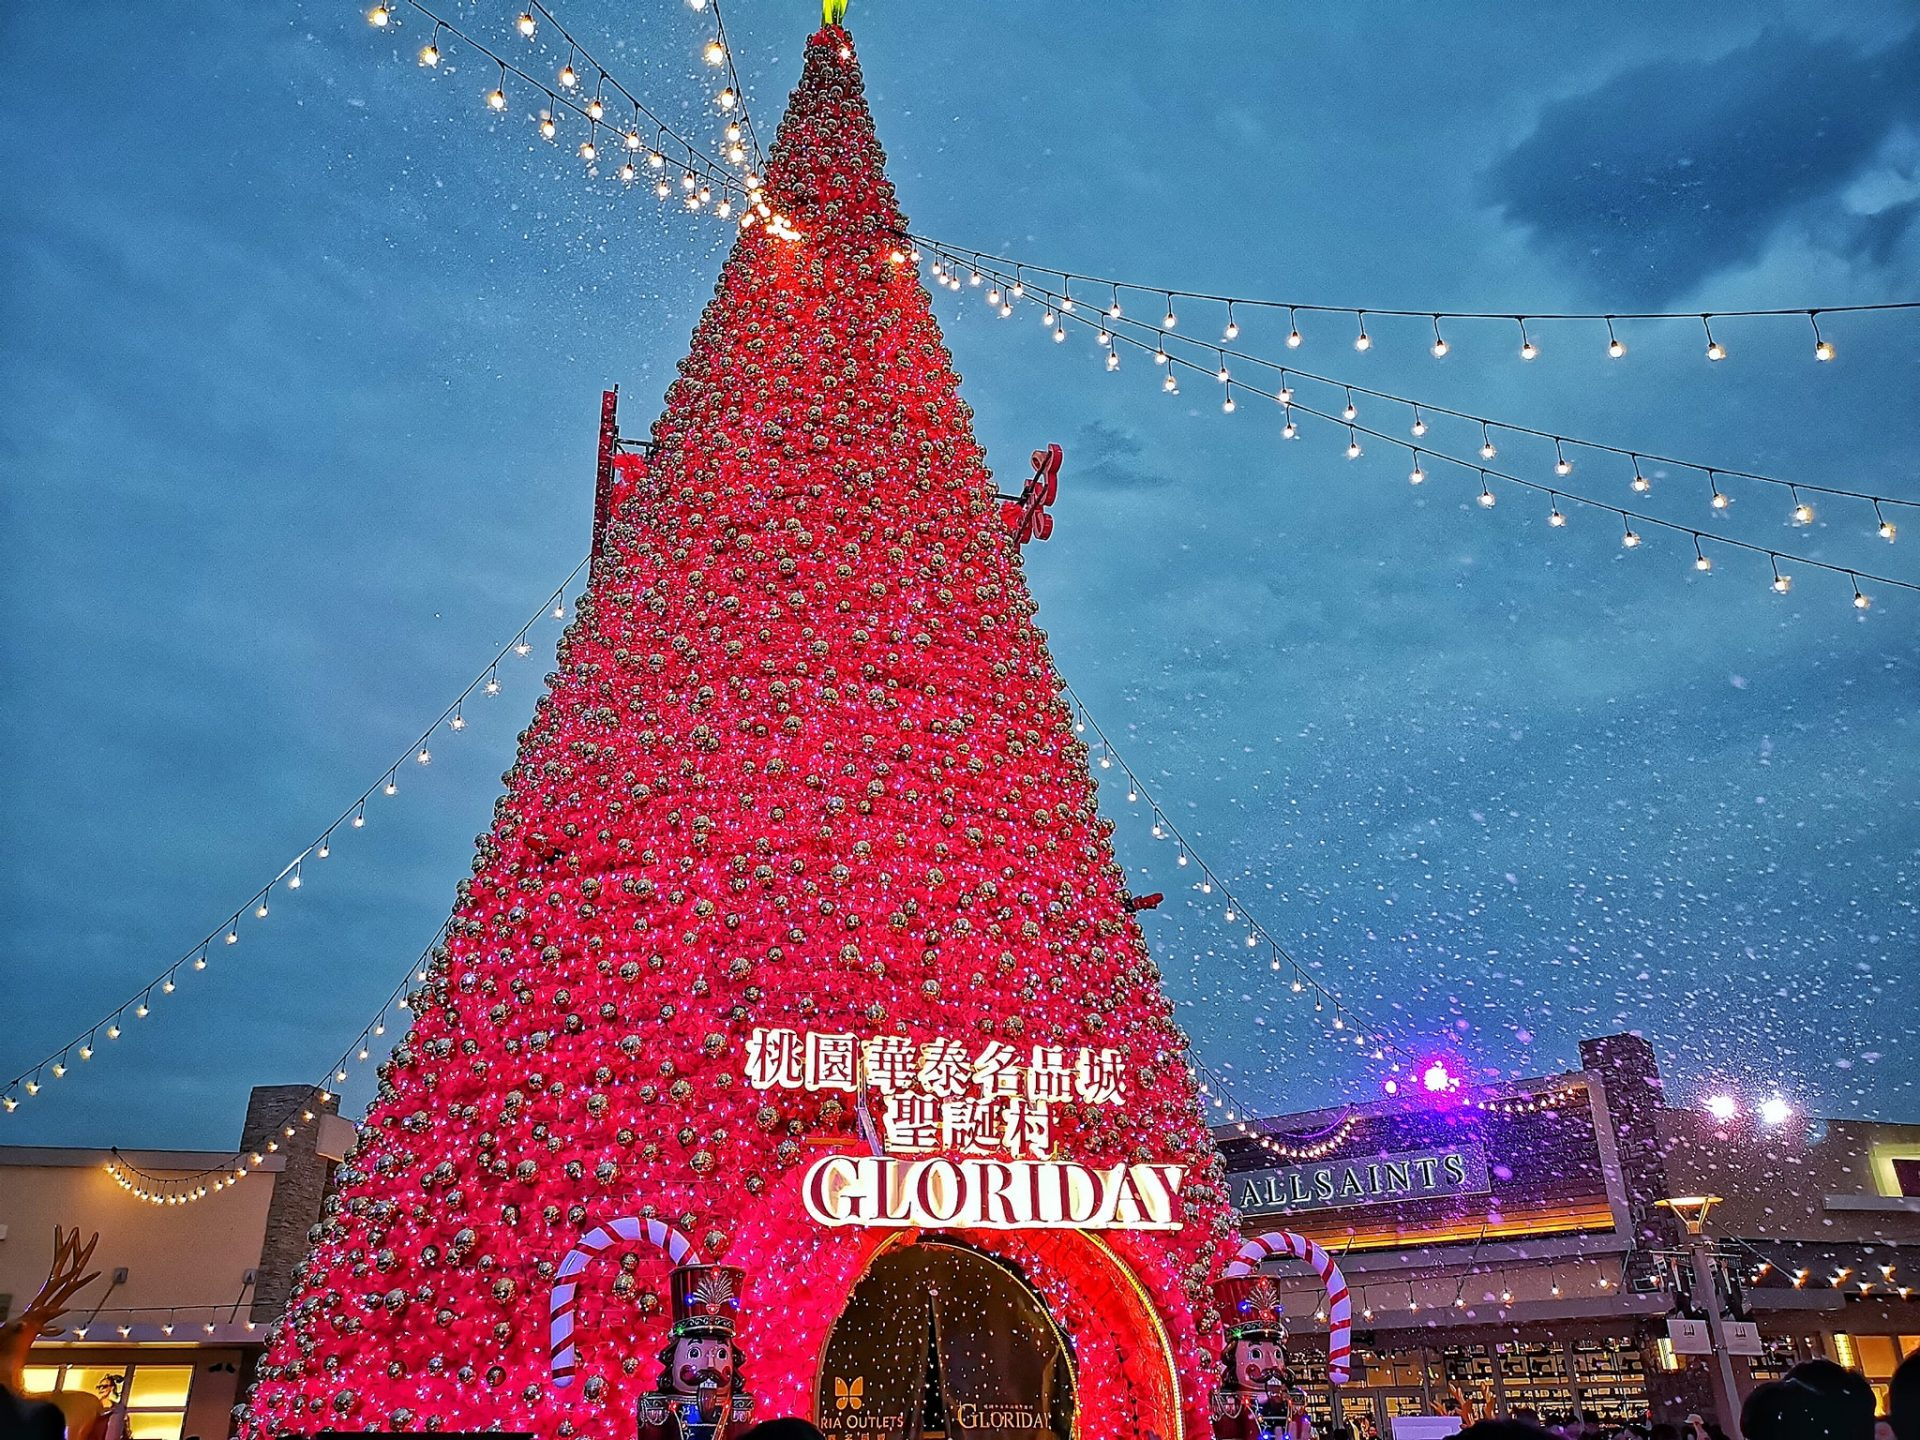 The 18-meter-tall red Christmas tree with a hole for visitors to explore inside is set up at an outlet mall in northern Taiwan's Taoyuan City. (Image: Courtesy of Xing-Mei in Keelung)